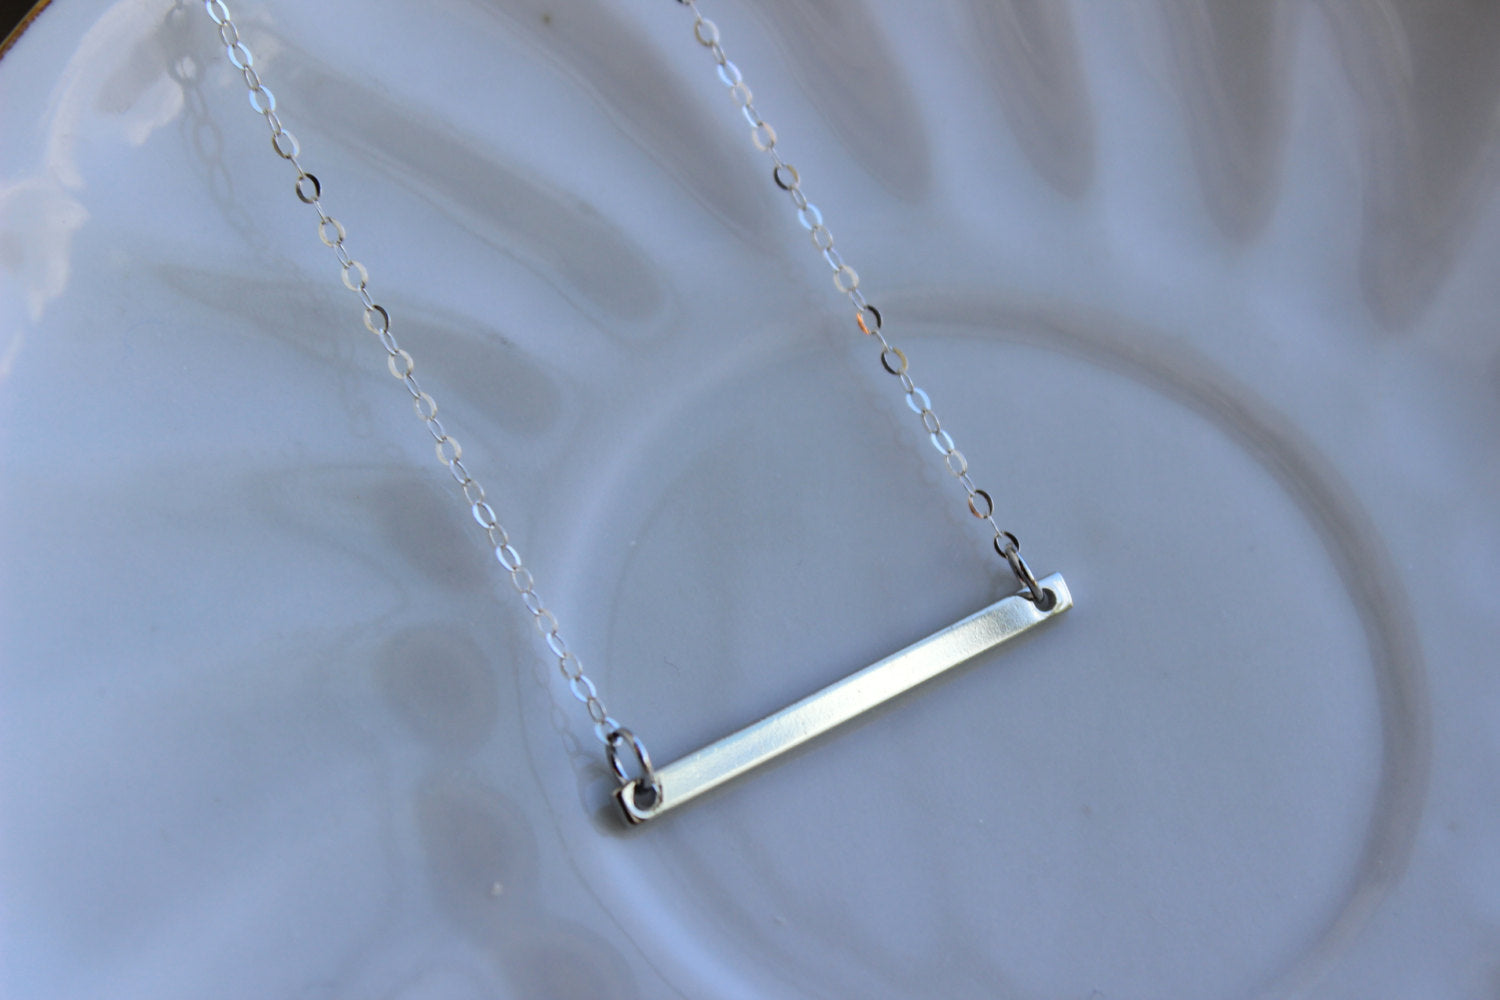 Silver Bar Necklace Statement Jewelry - Silver Bar Charm Necklace - Gift Under 20 - Simple Dainty Jewelry Long Bar Necklace Bridesmaid Gift